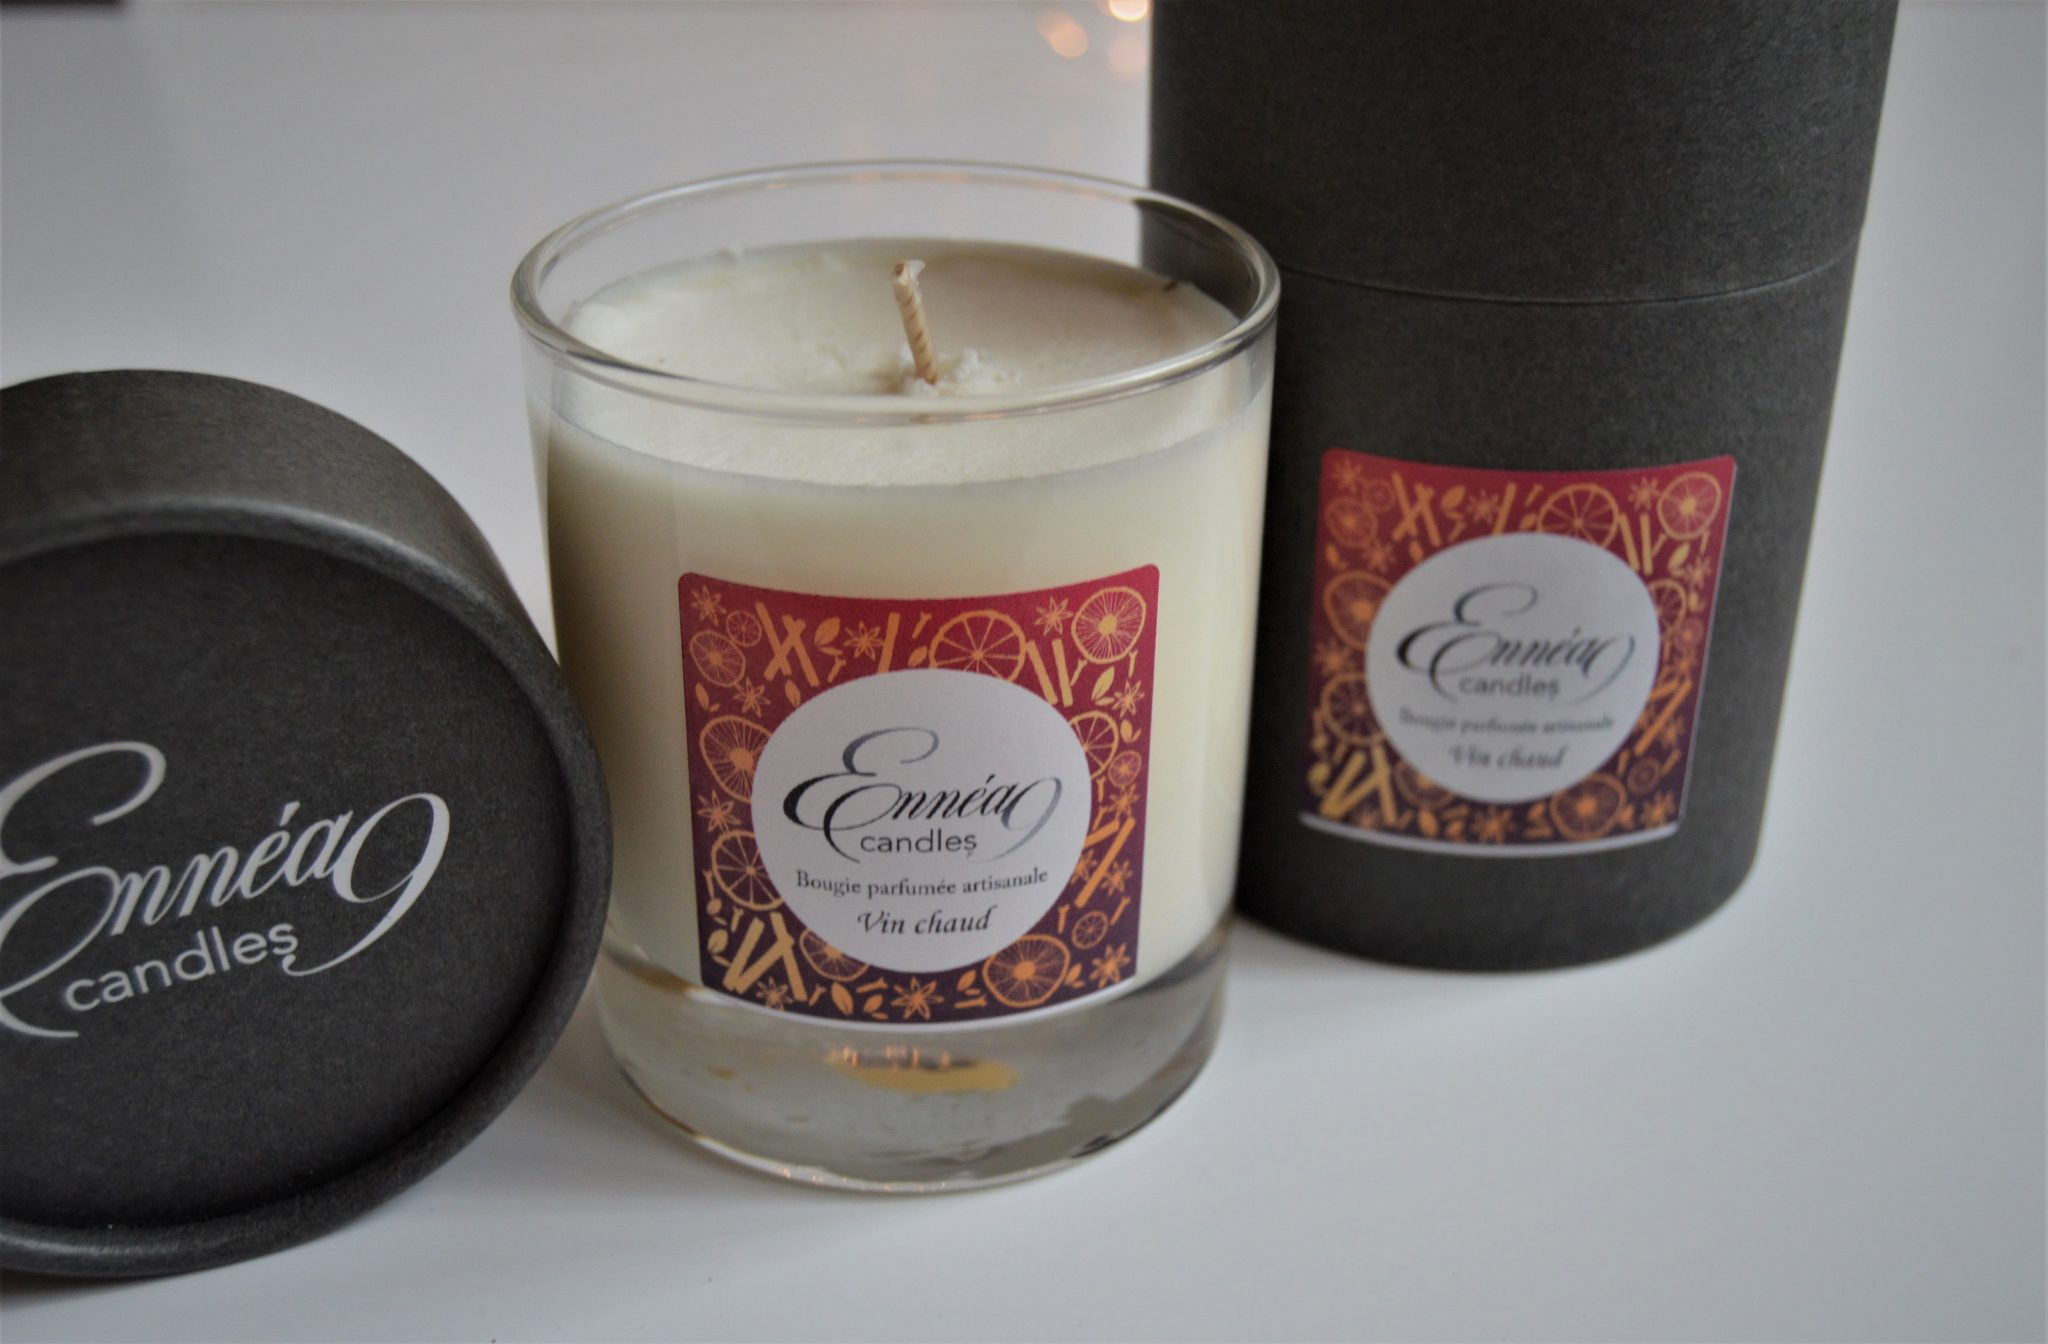 Ennéa Candles